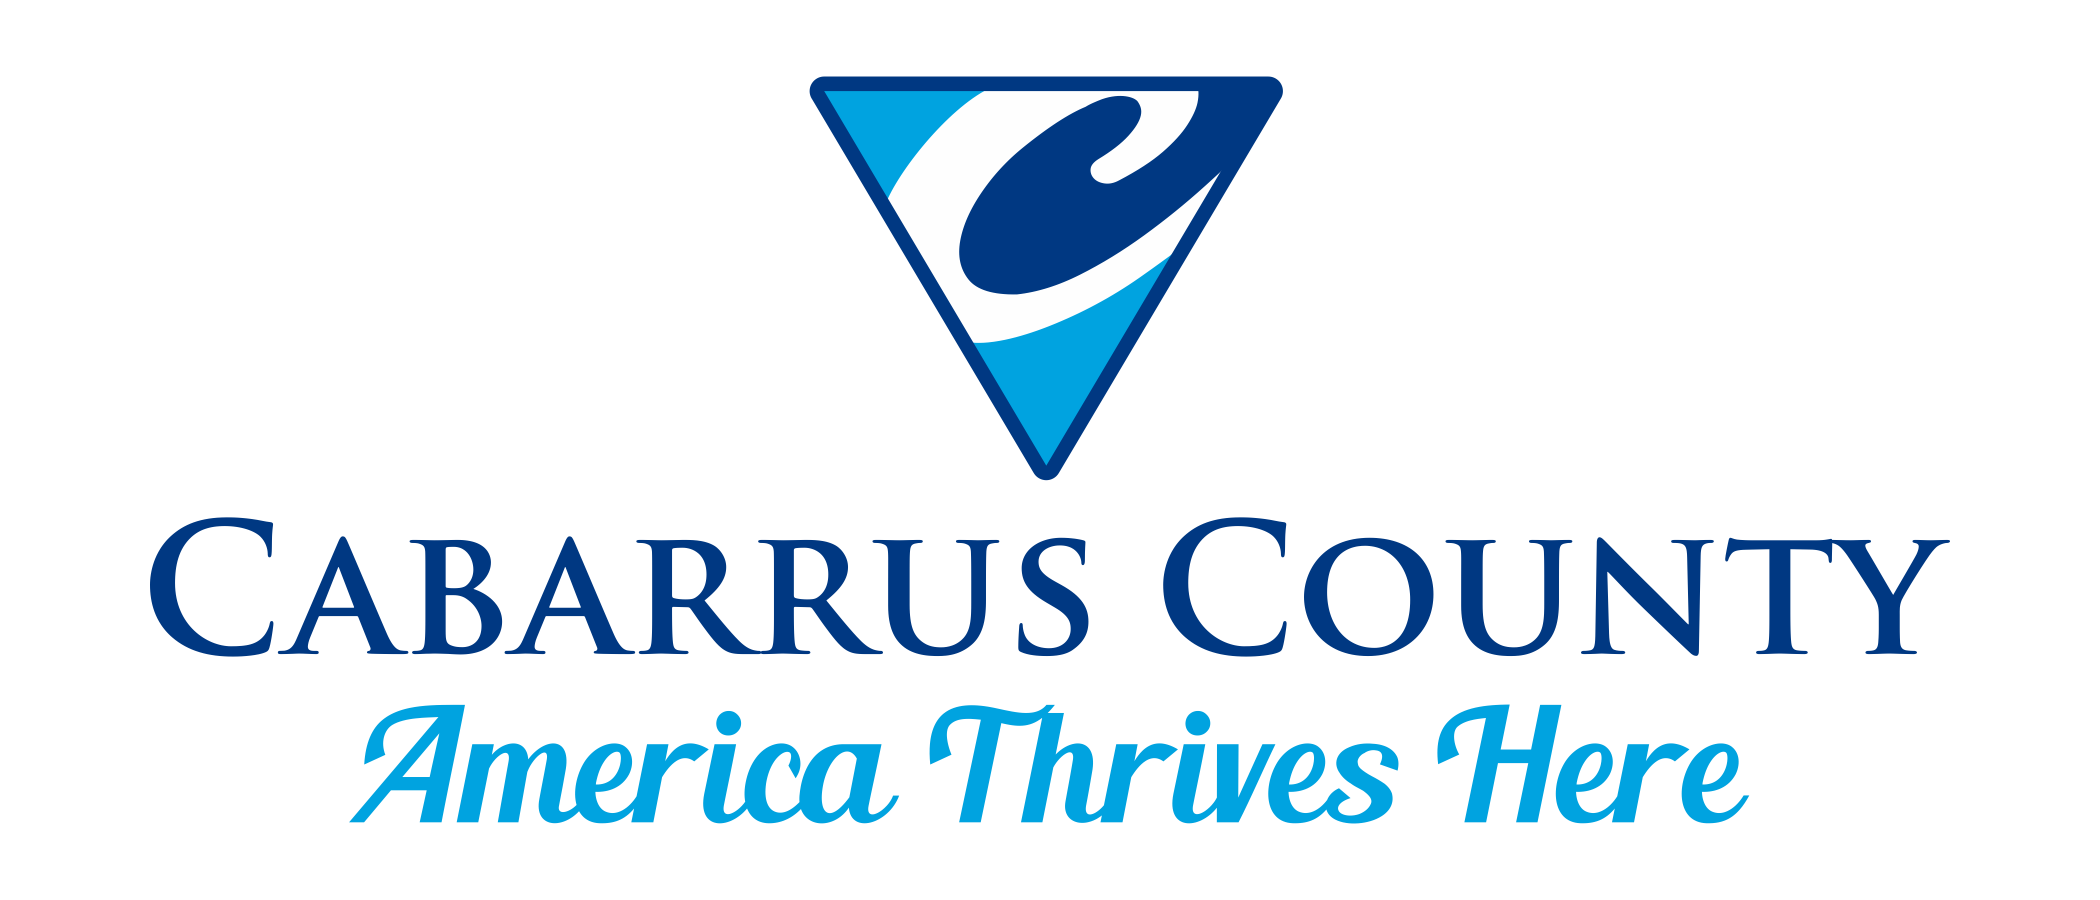 Cabarrus County logo and tagline are protected by copyright and may not be used without permission.